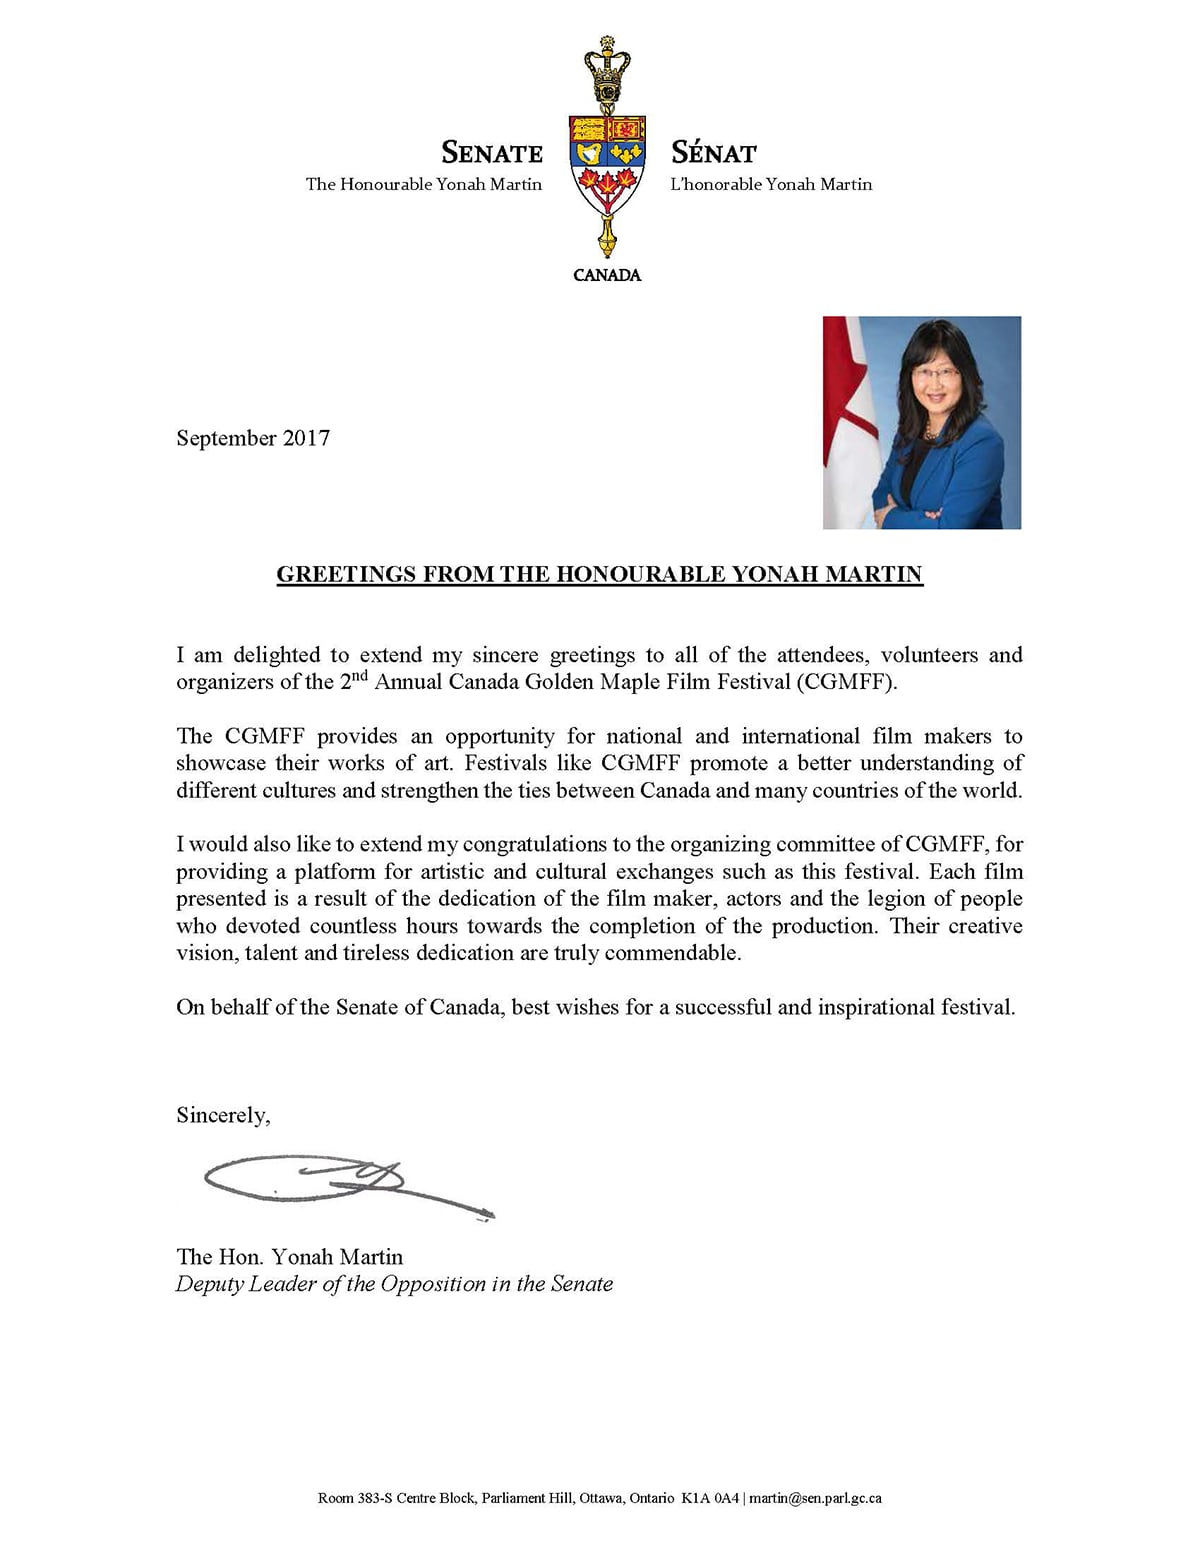 Congratulatory Letter from Honorable Yonah Martin, Senator